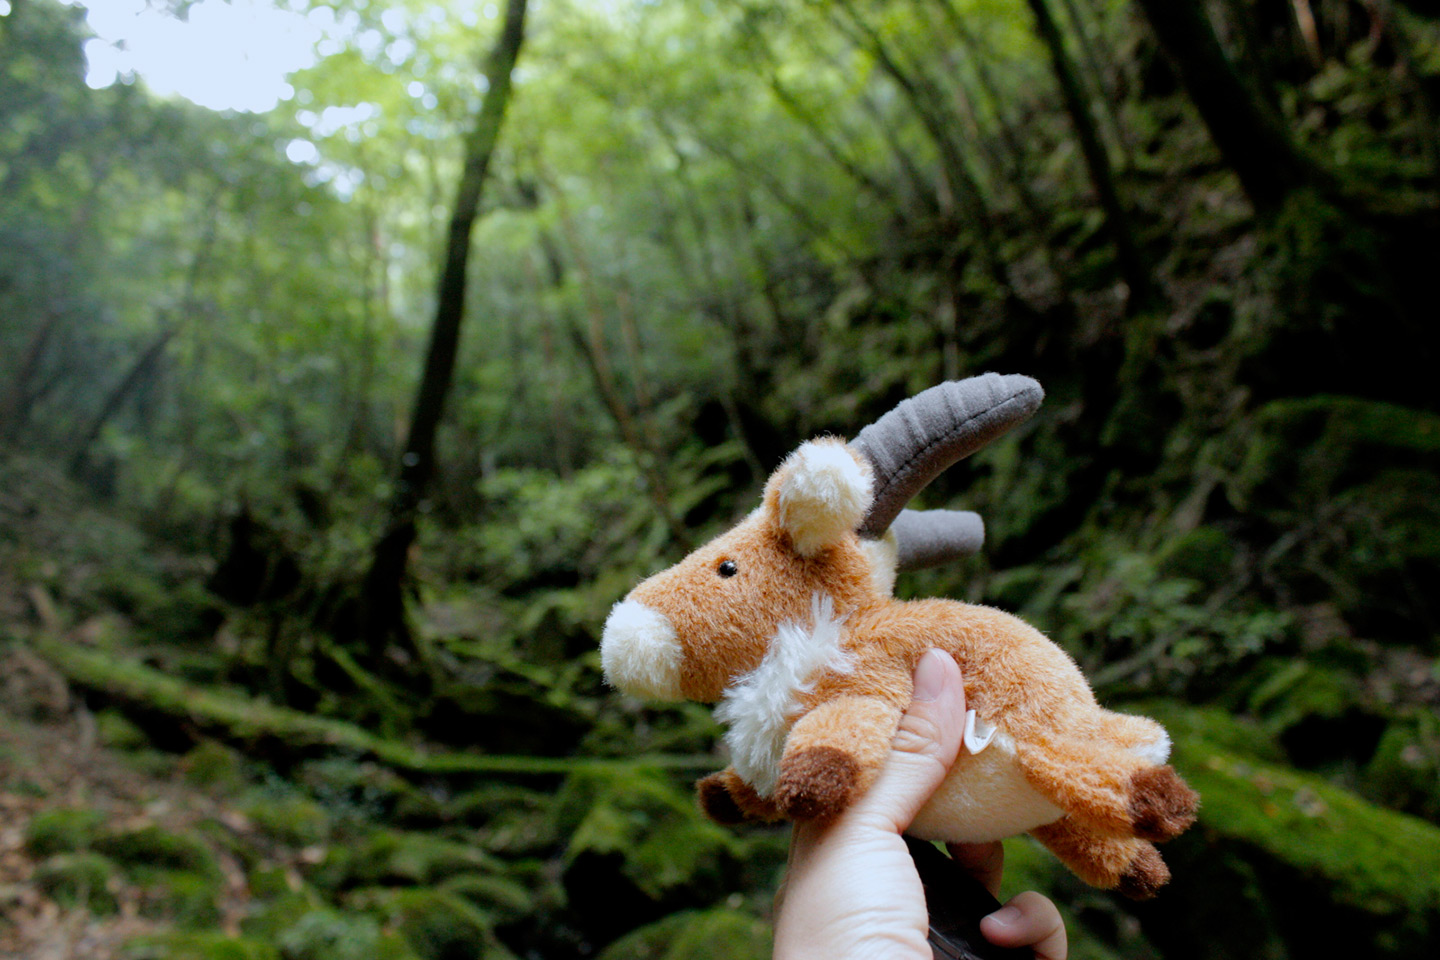 stuffed animal in forest